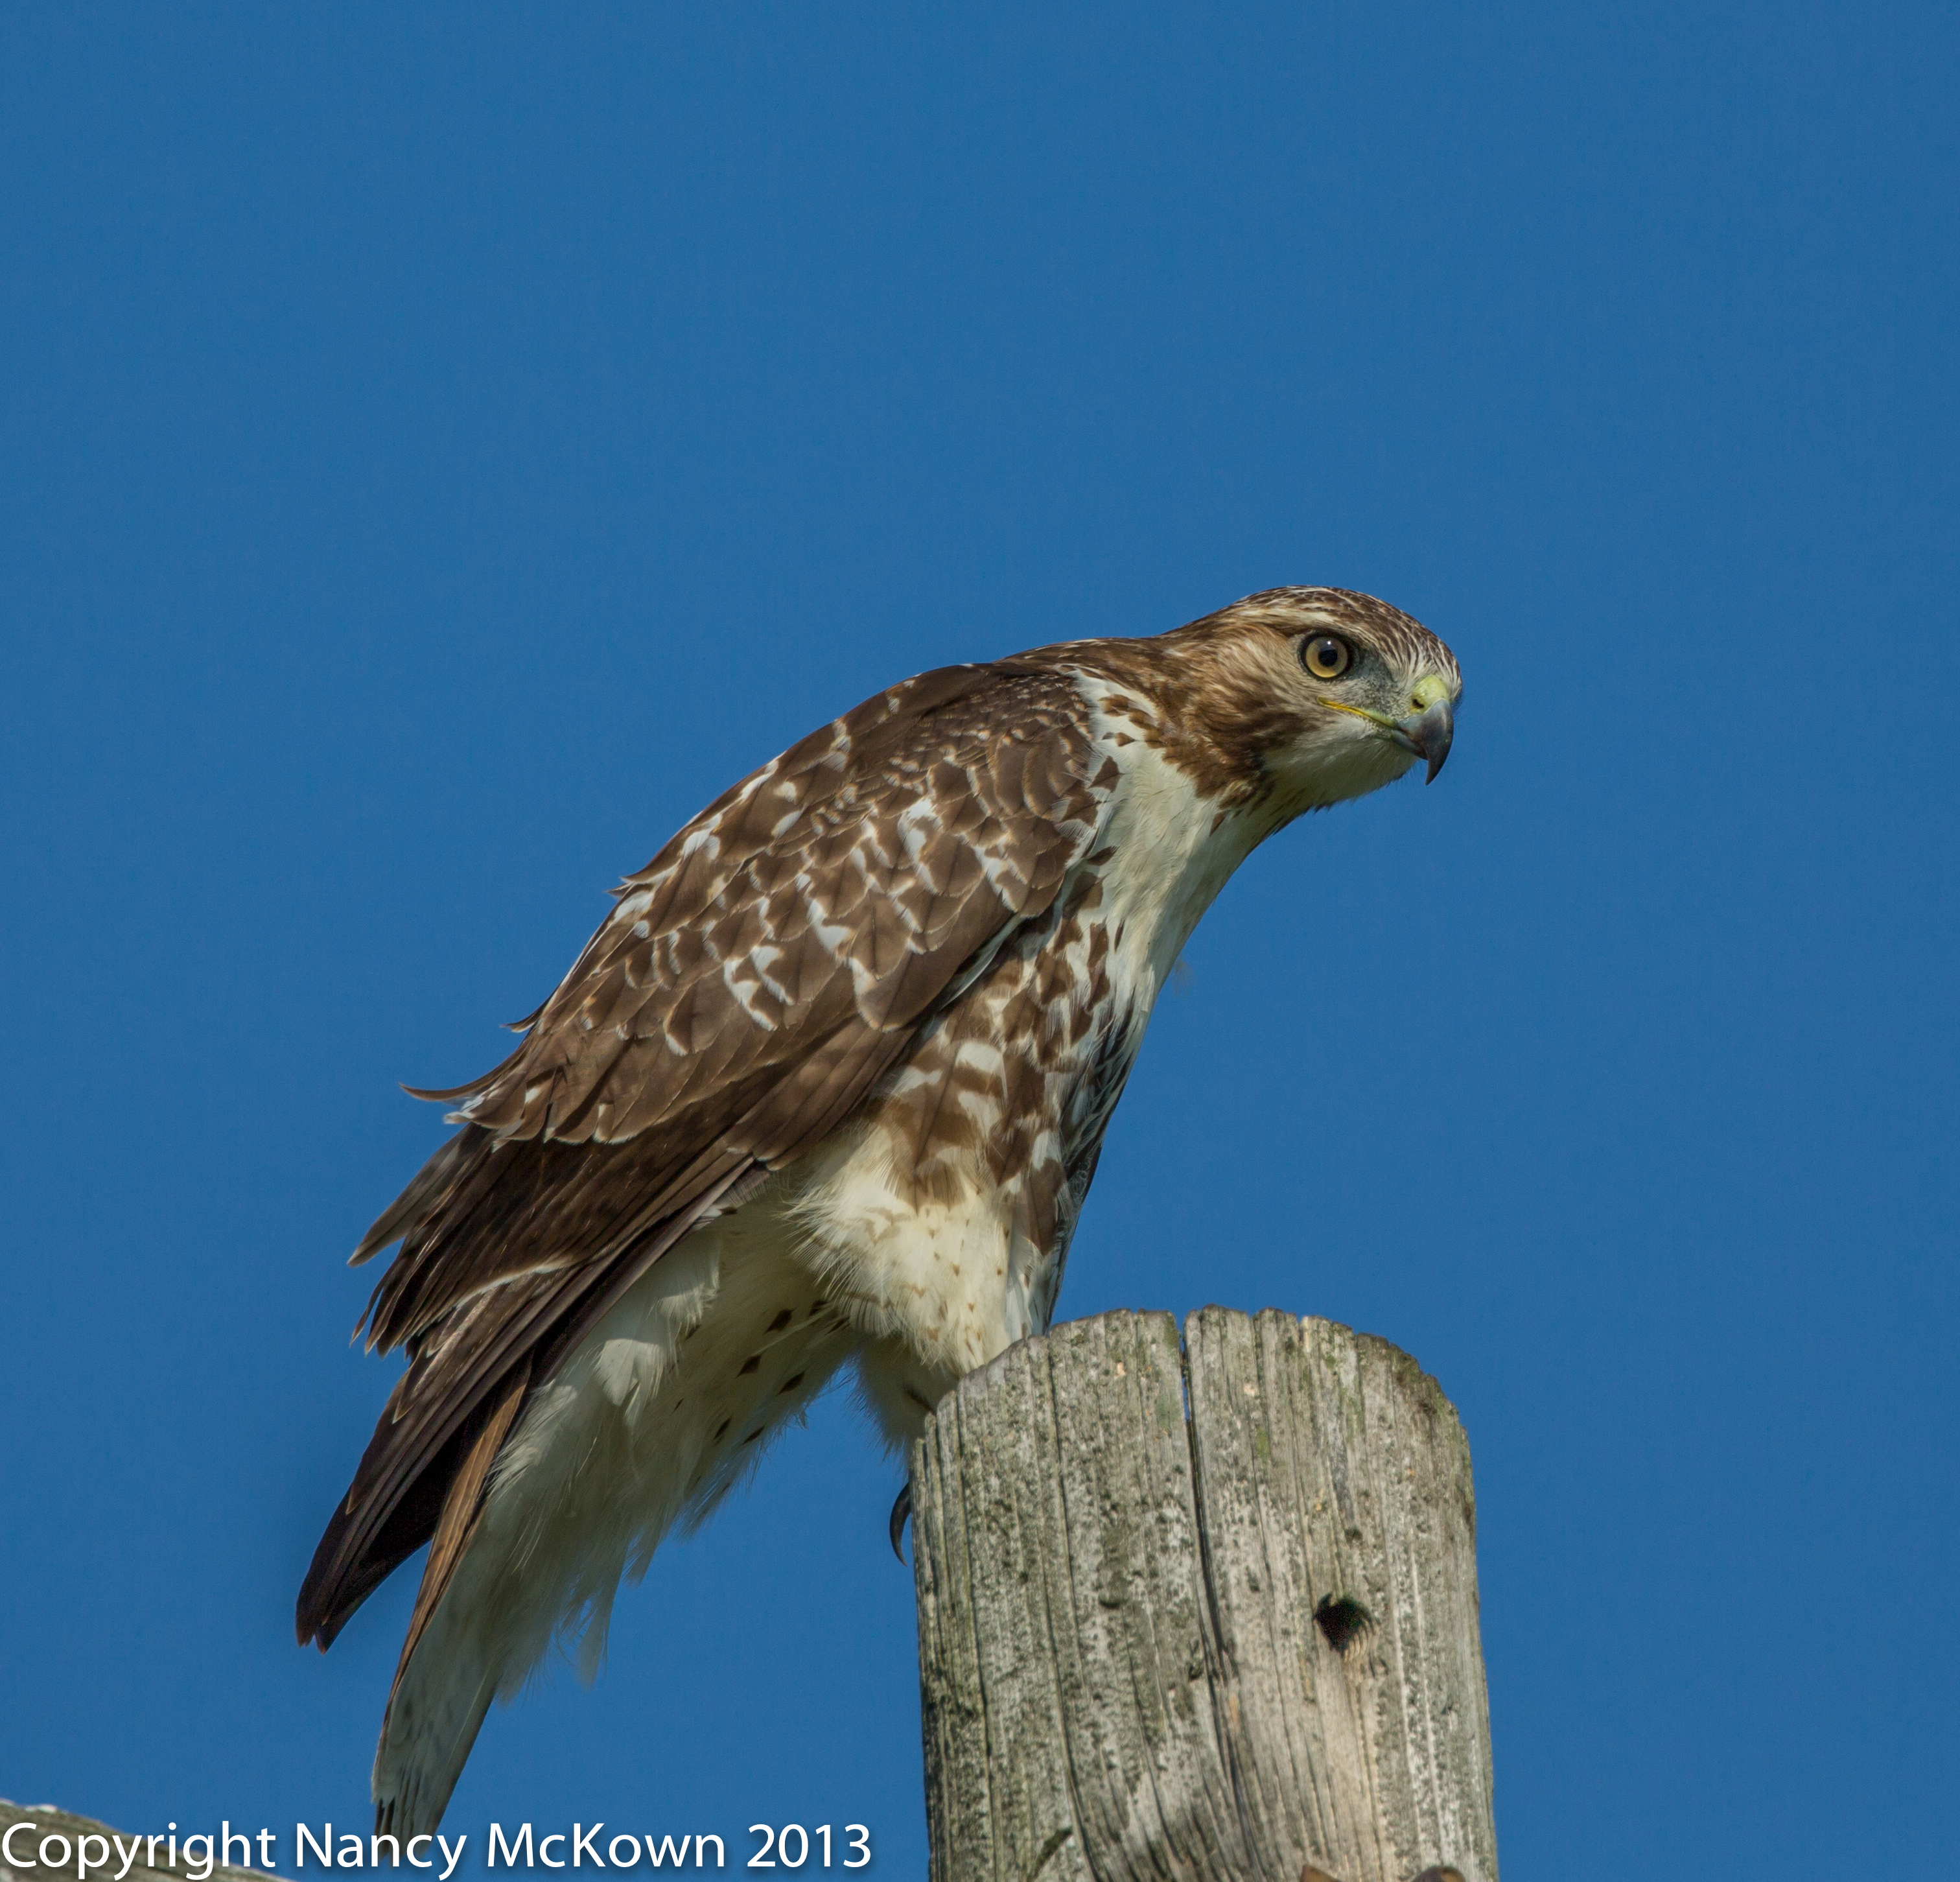 How to Photograph Red Tailed Hawk